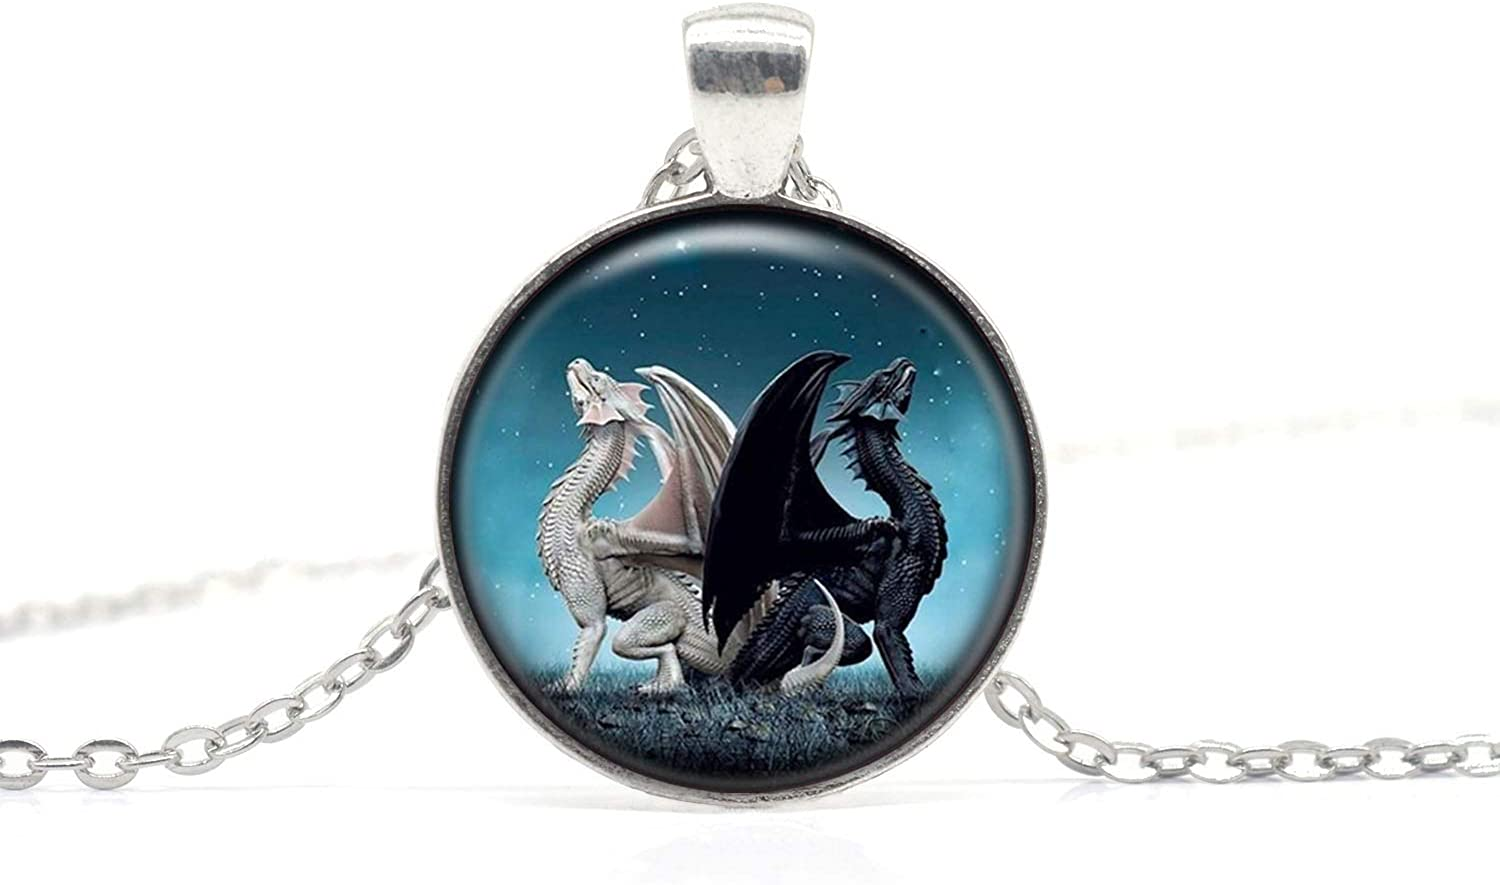 Fierce Animal Dragon Necklace Handmade Charm Jewelry Couples Black and White Dragon Pendant Gift